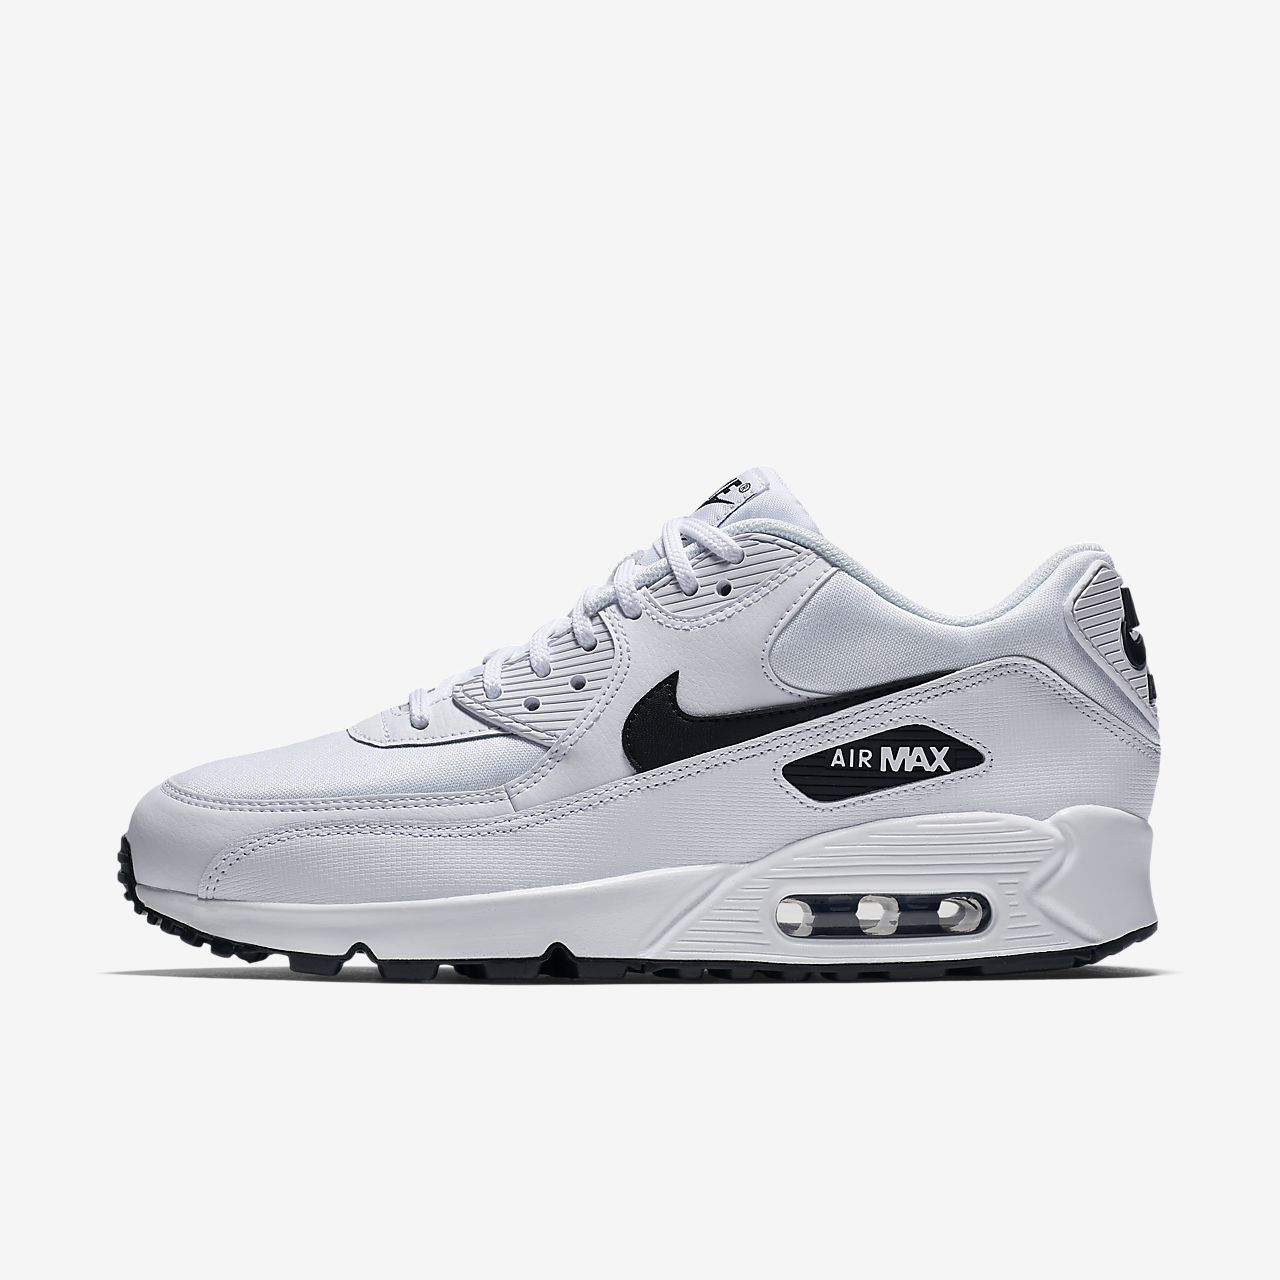 nike air max 90 blue and white women's nike compression short